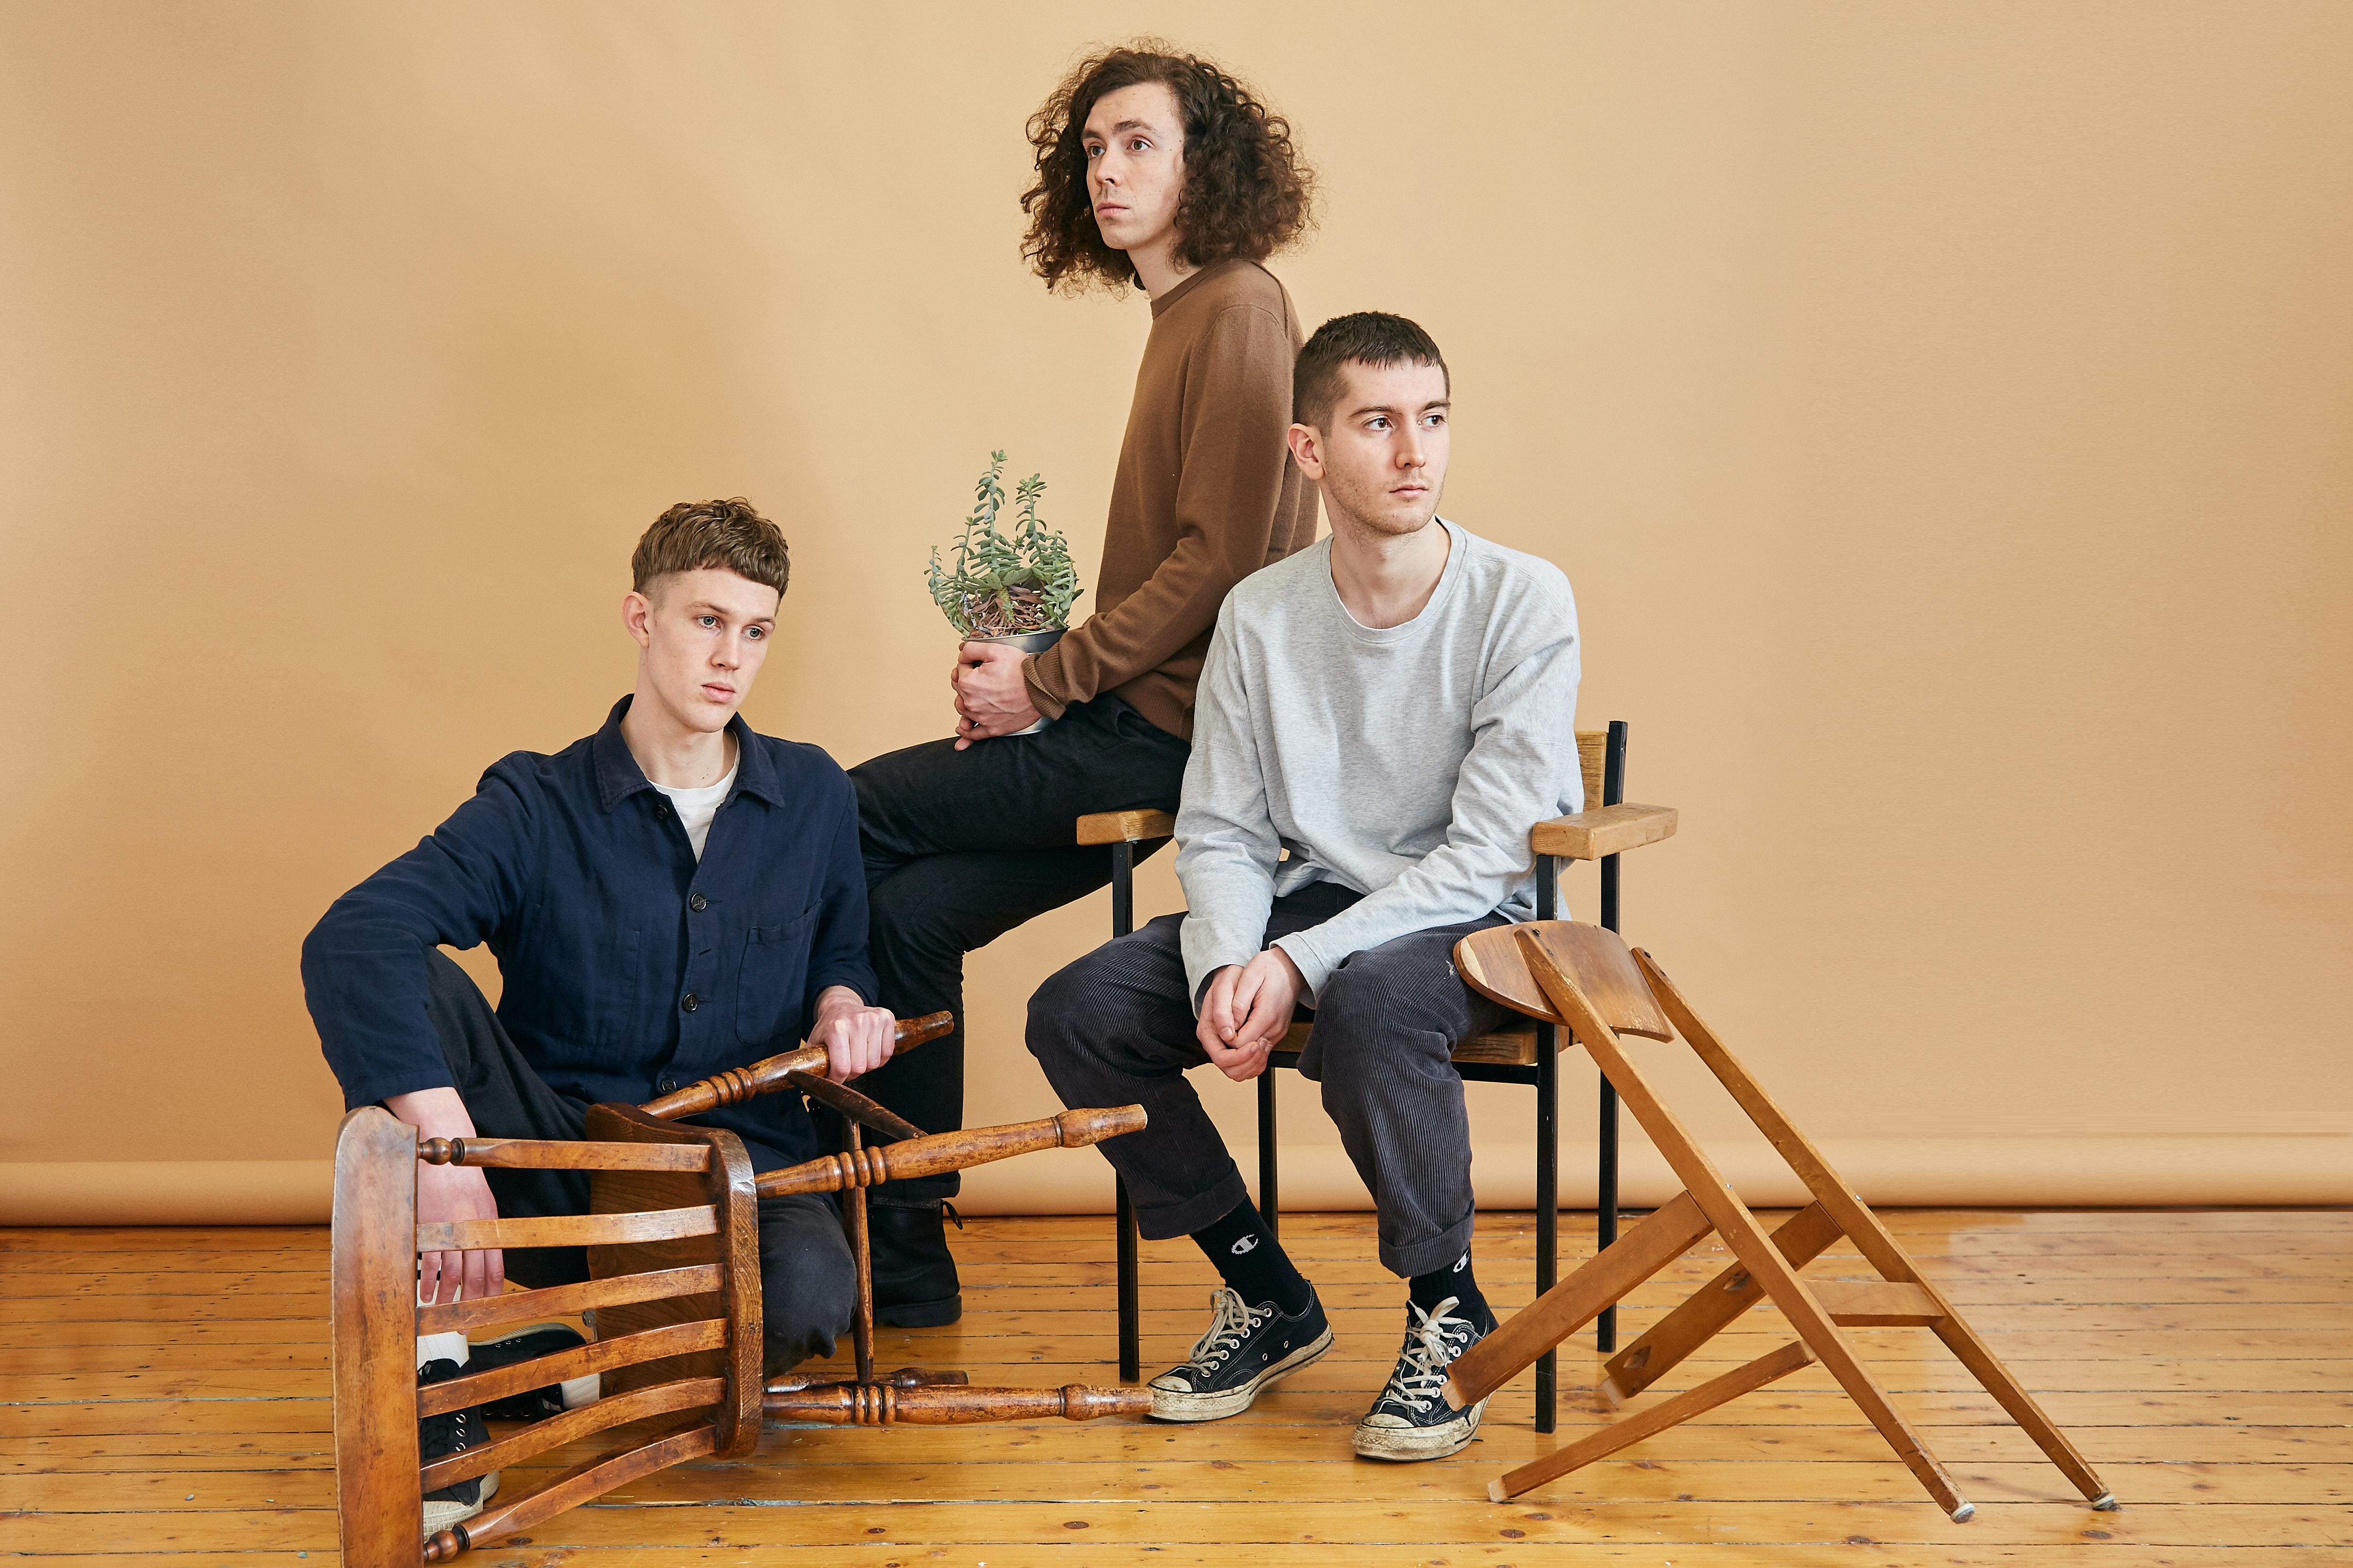 Ones to watch: WH Lung